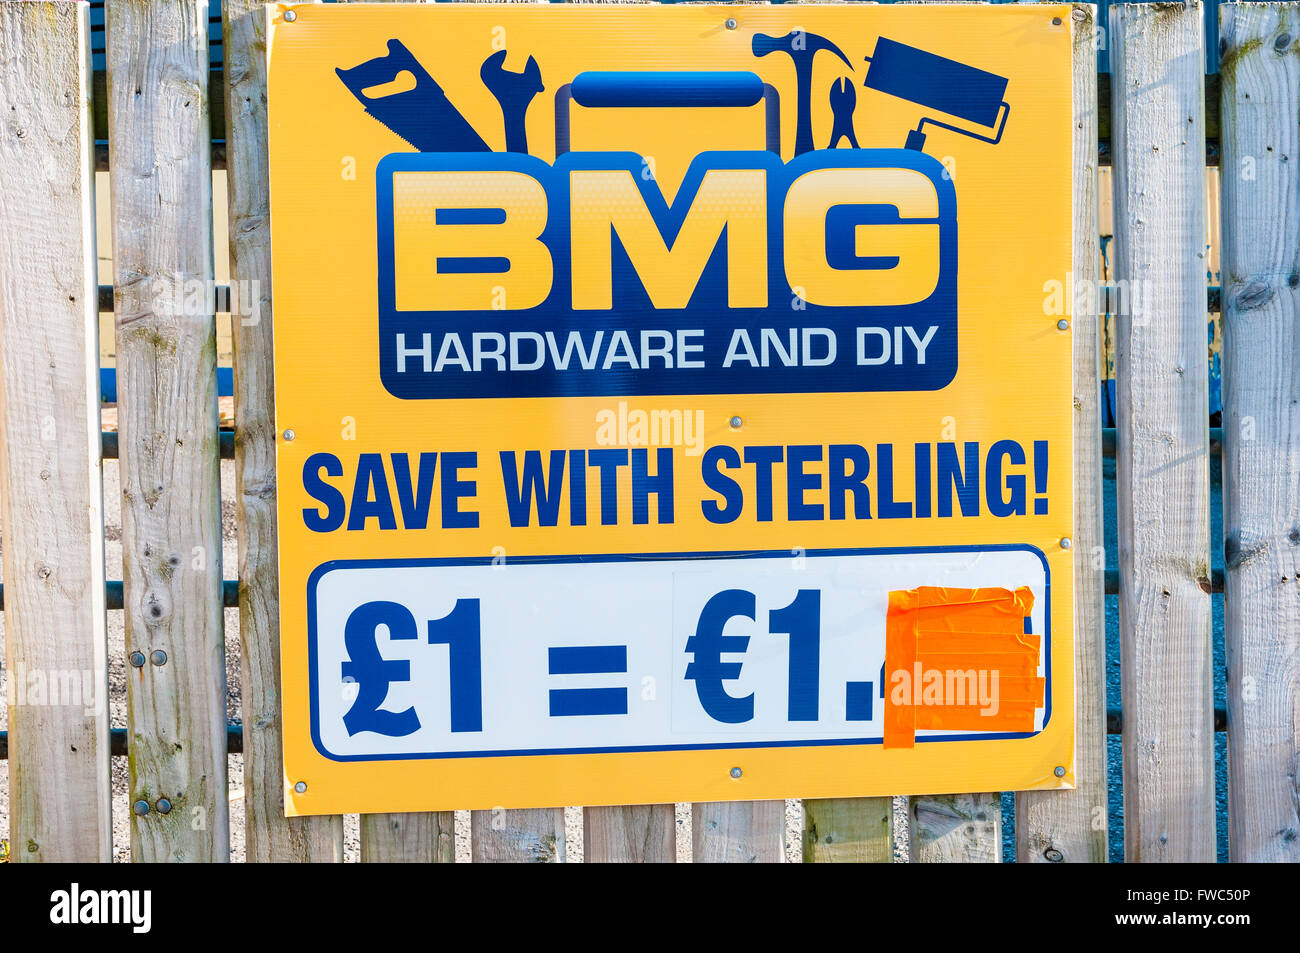 Sign at a hardware store giving equity between Sterling and Euro and saying 'Save with Sterling' - Stock Image